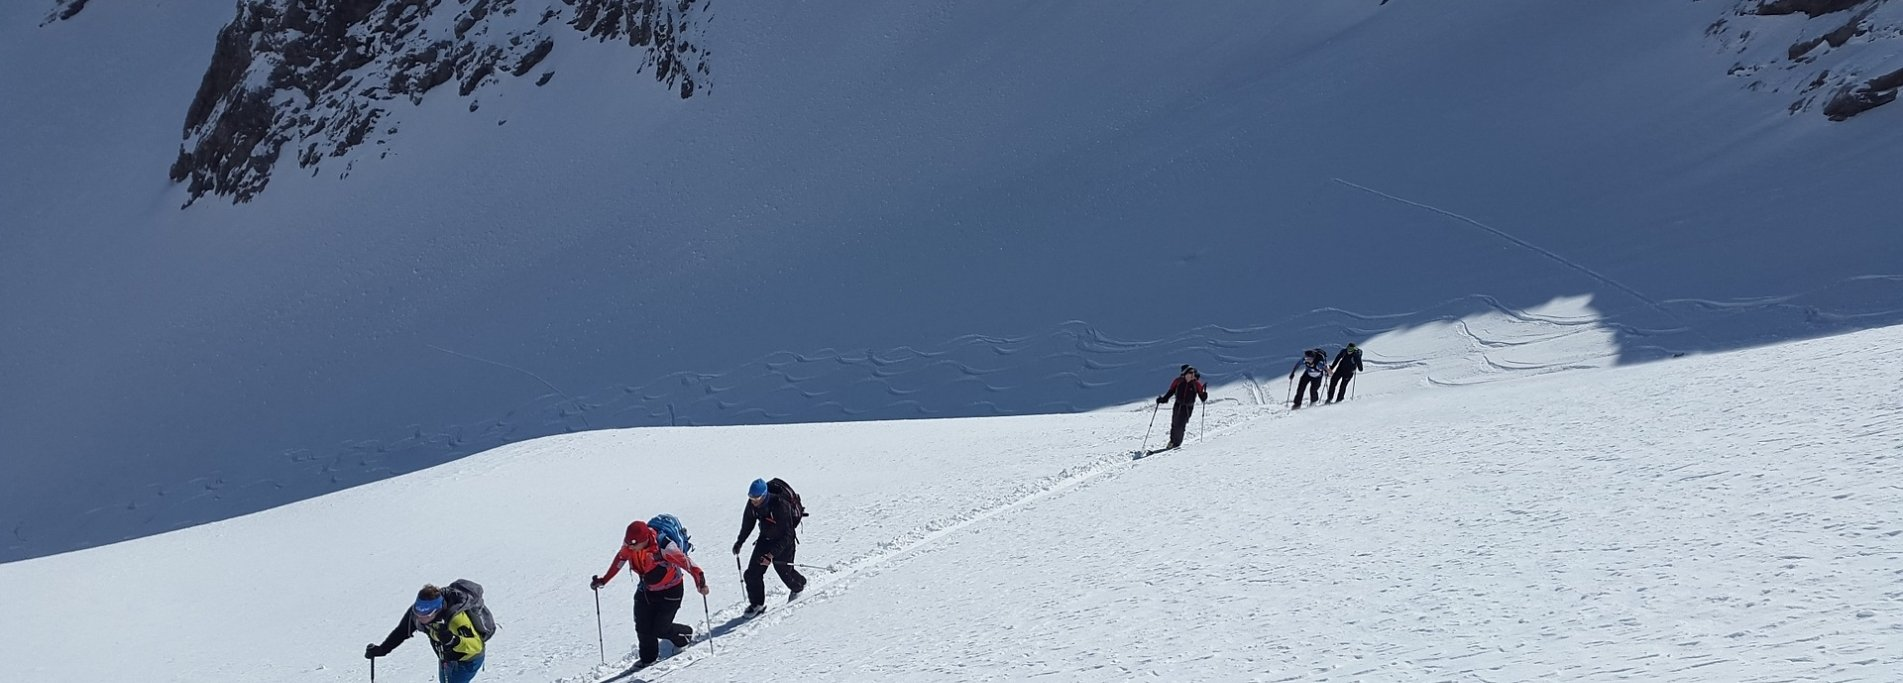 Ski touring in Tien-Shan mountains - Backcountry in Kyrgyzstan